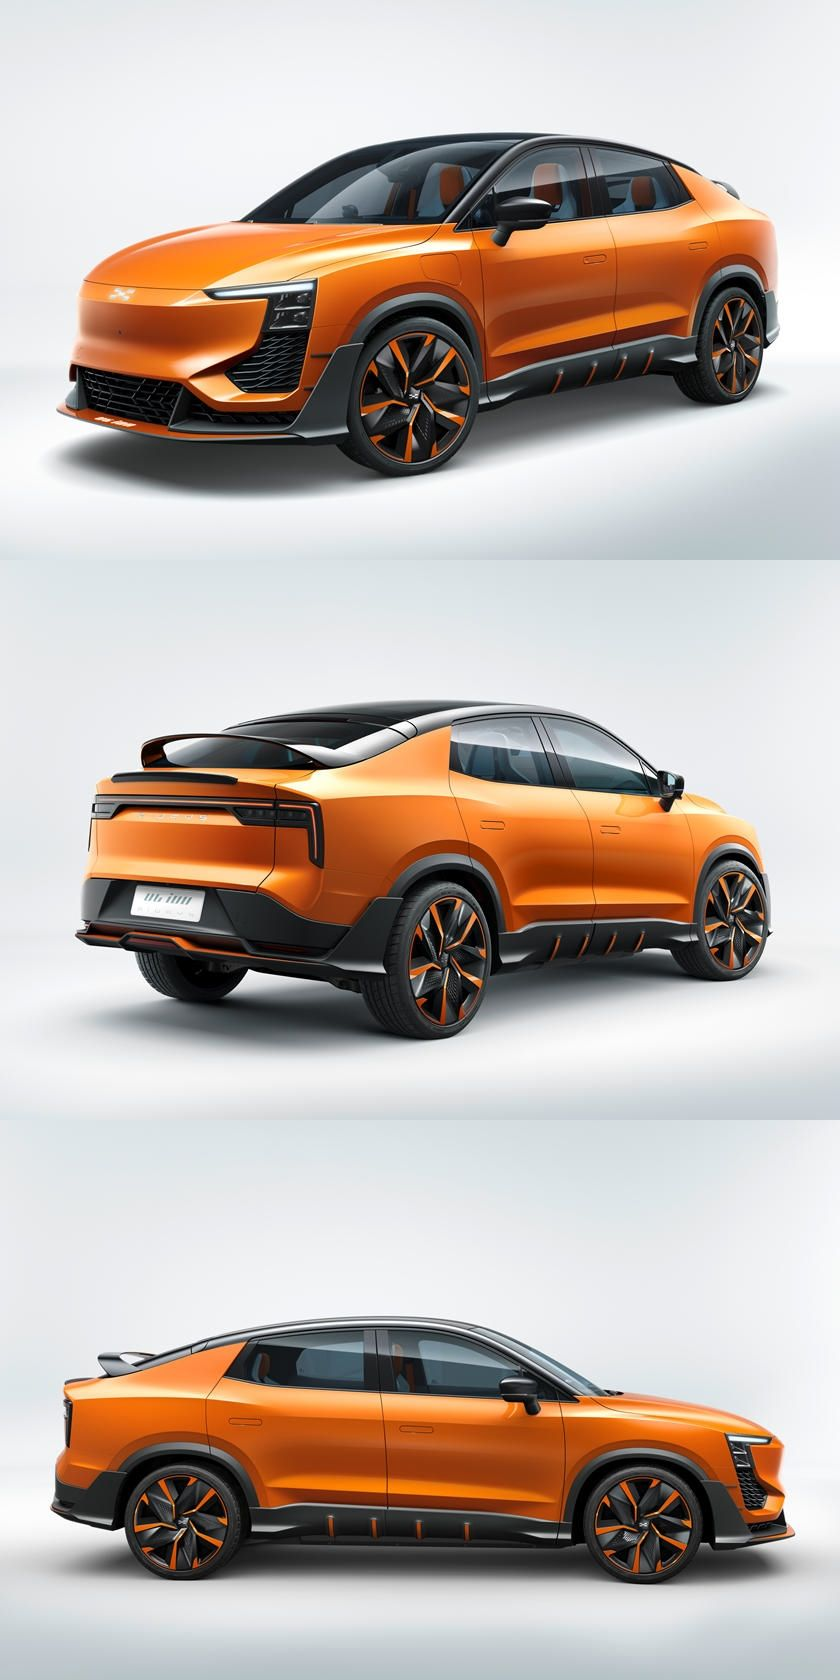 Presenting The Aiways U6ion China S Response To The Tesla Model Y But Is It Any Good Tesla Model Infiniti Vehicles Tesla